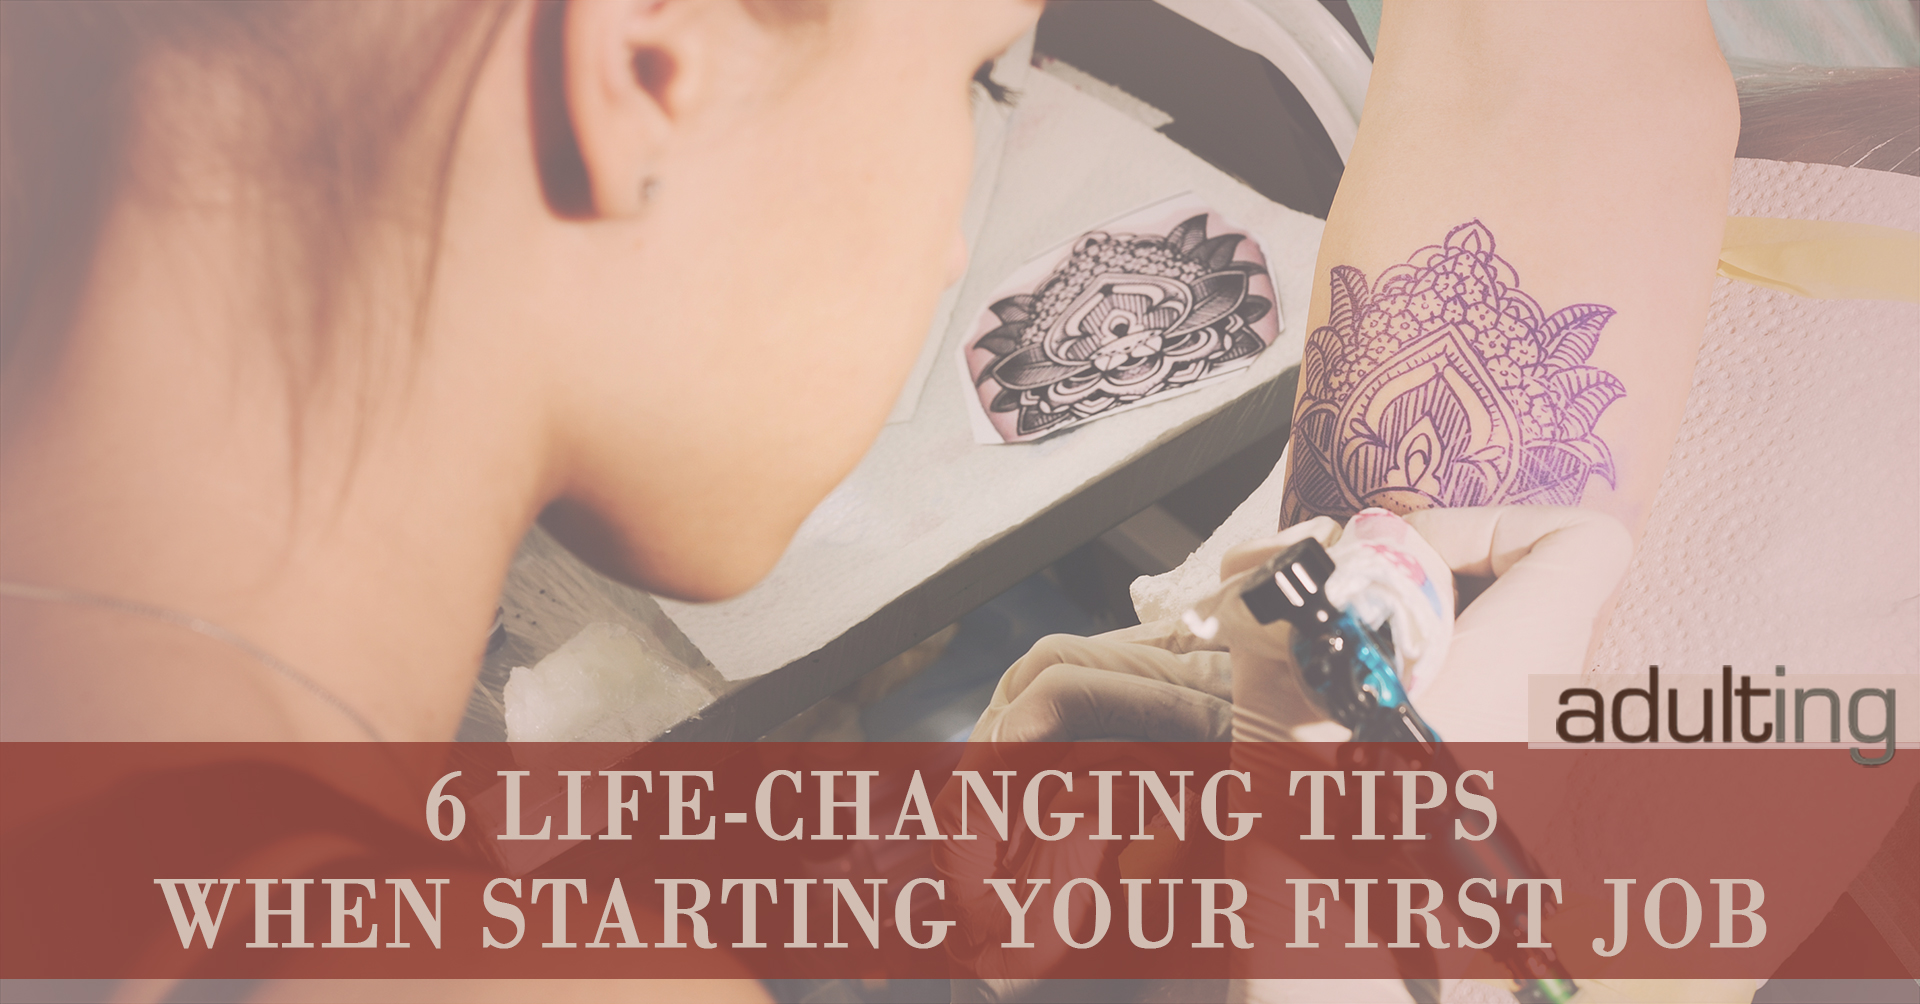 6 Life-Changing Tips When Starting Your First Job